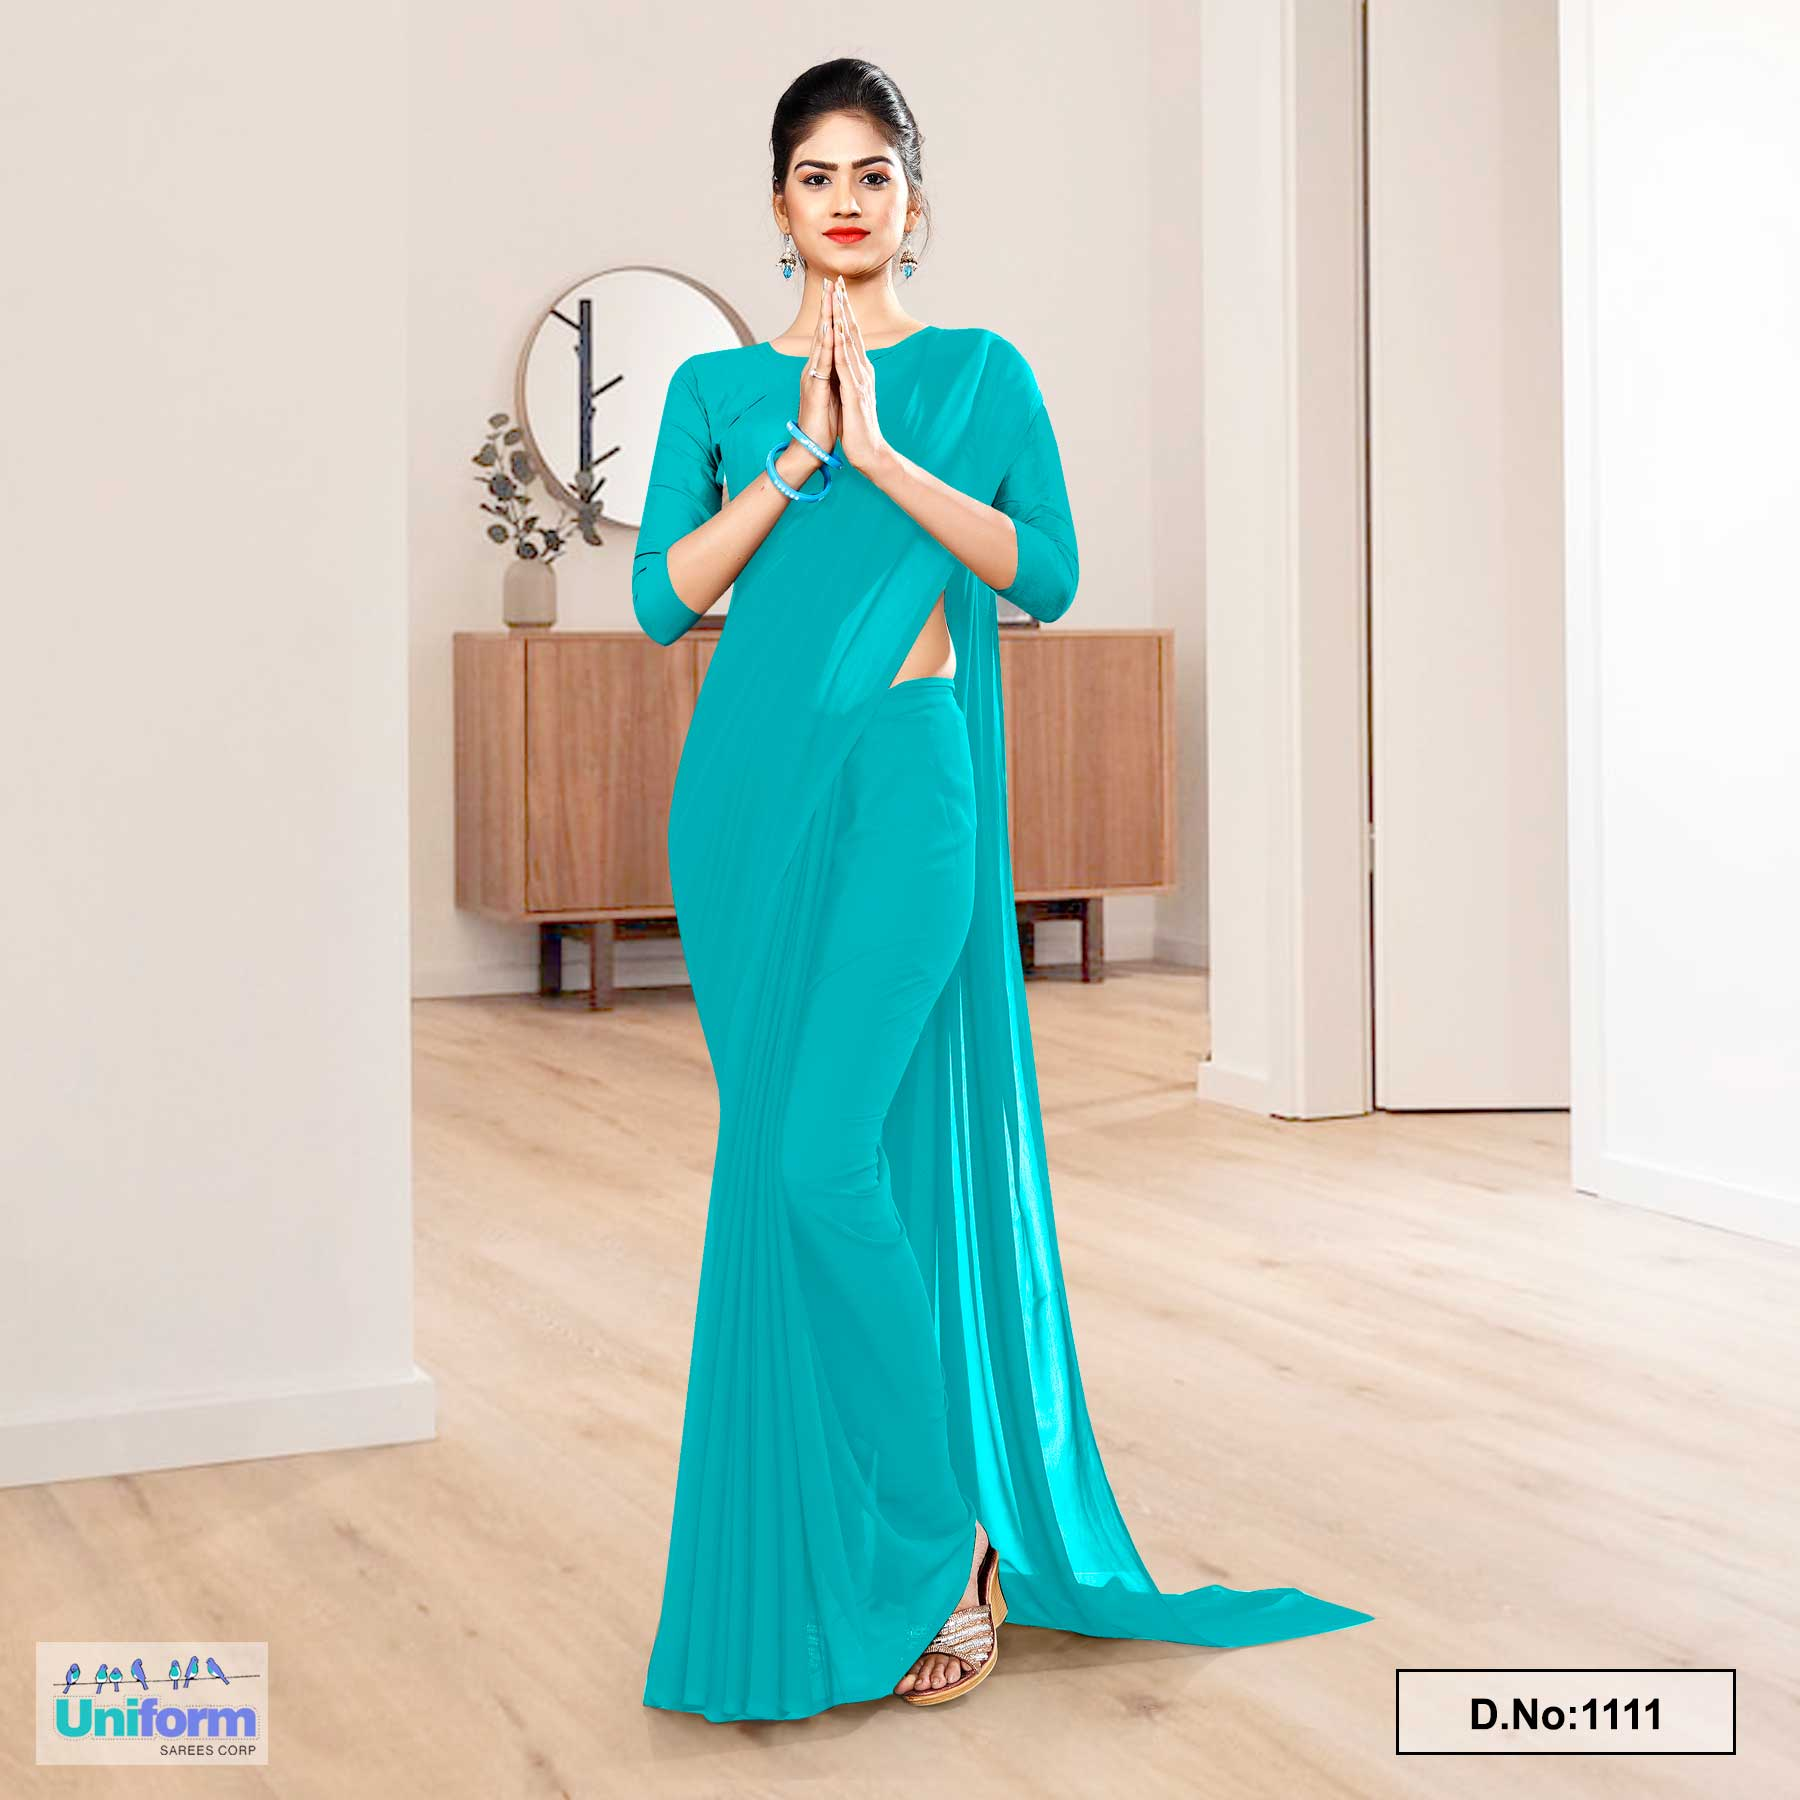 Sea Green Soft Georgette Plain Uniform Sarees For Housekeeping